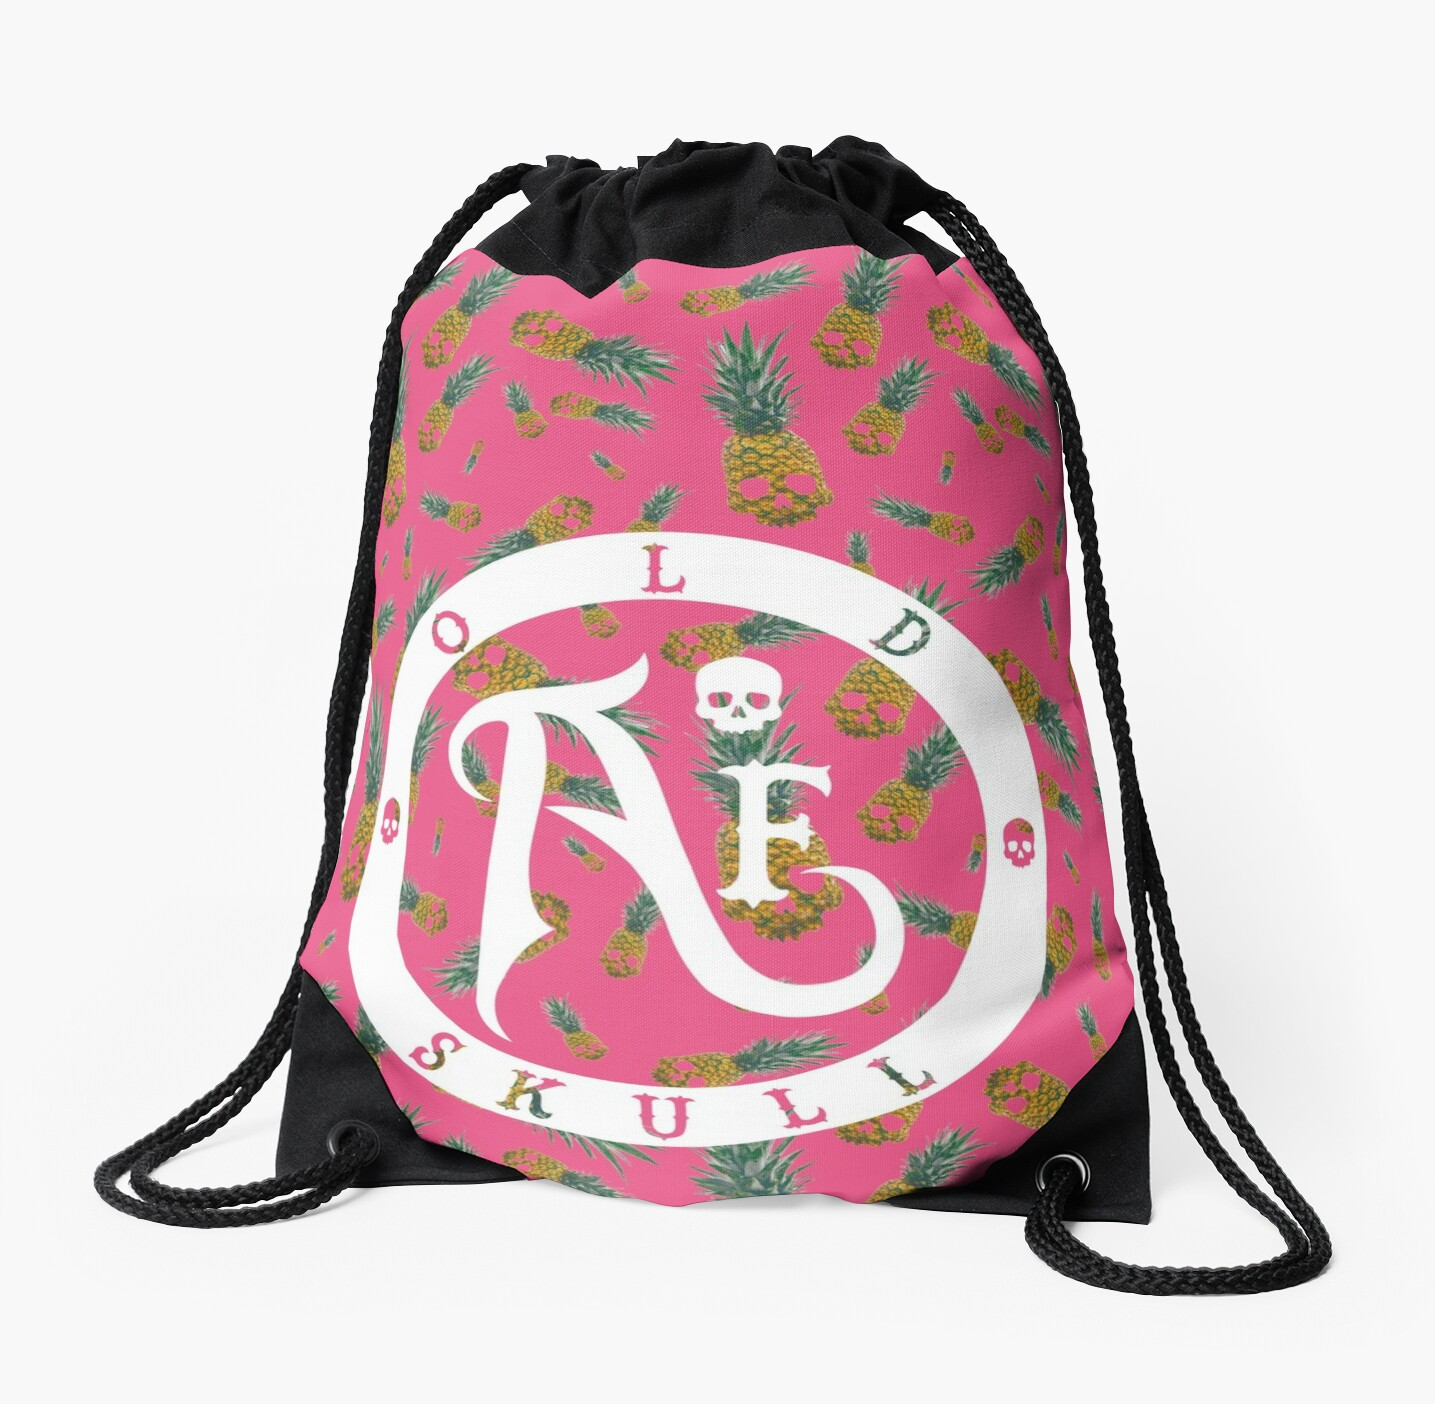 Skull Pineapple Pink - Backpack by afoldskull